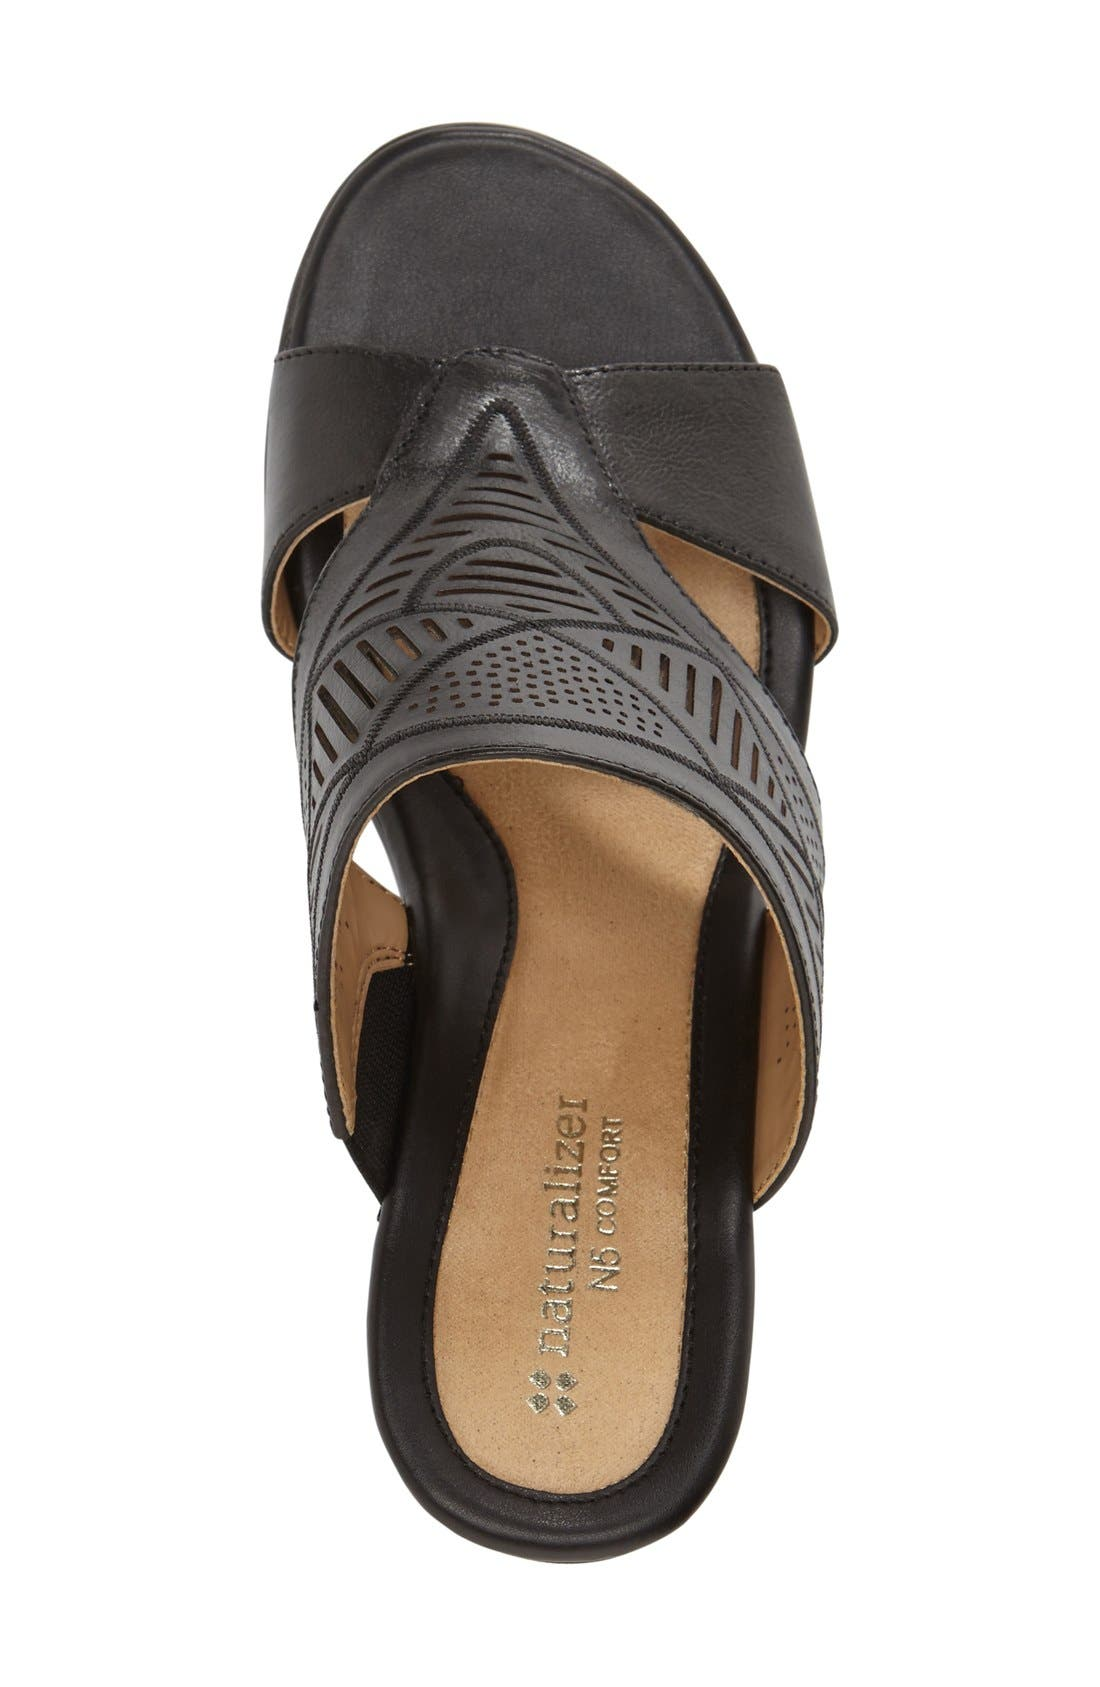 Alternate Image 3  - Naturalizer 'Oshea' Wedge Sandal (Women)